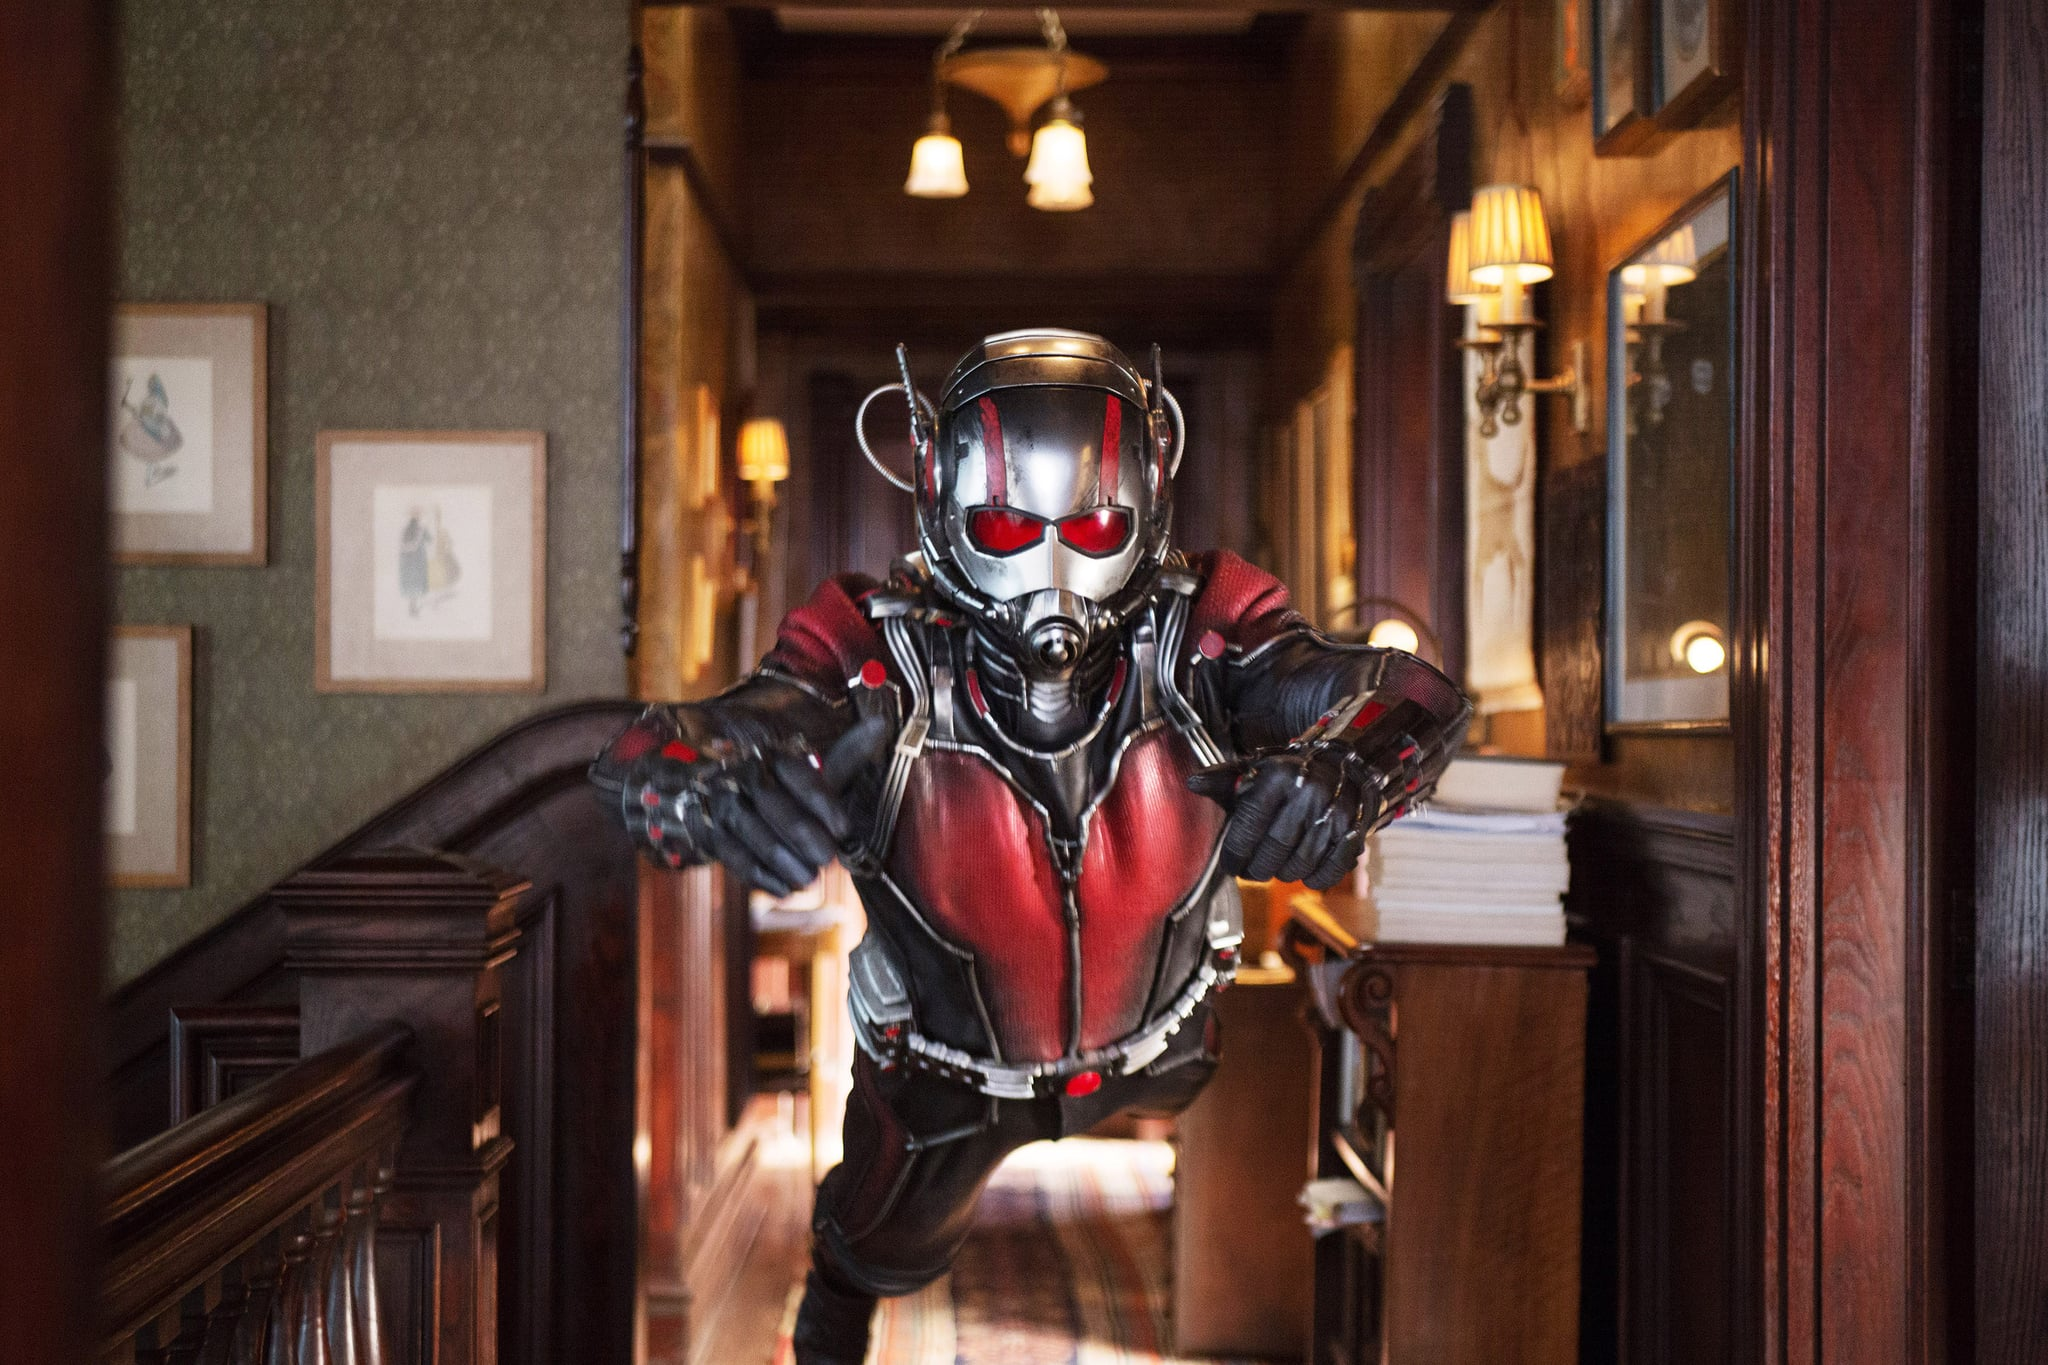 Ant-Man (2015) | Marvel Movies With the Best Reviews | POPSUGAR ...